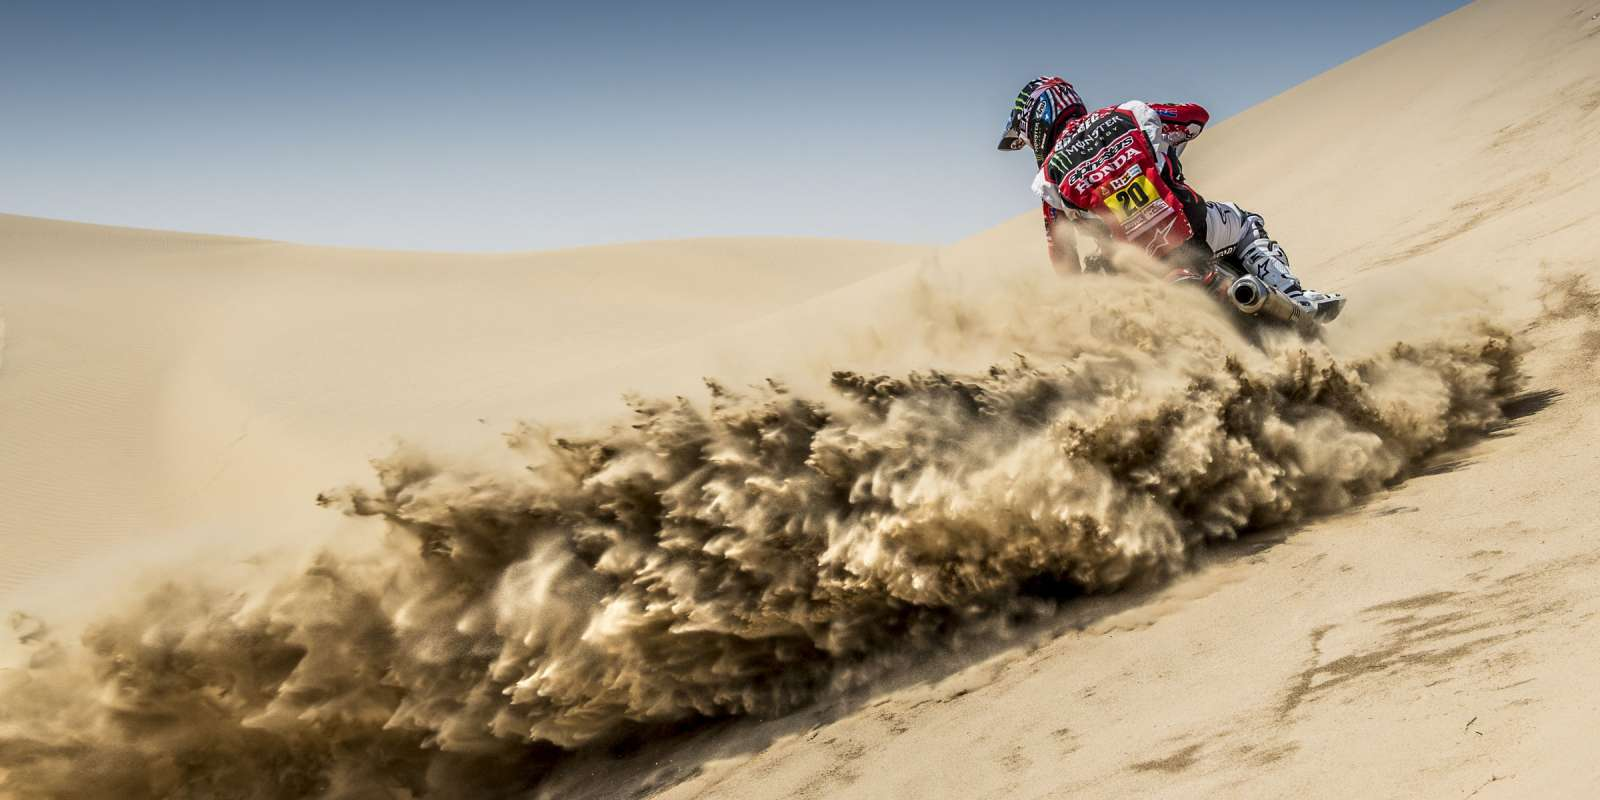 Ricky Brabec at FIM Rally in Abu Dhabi, UAE